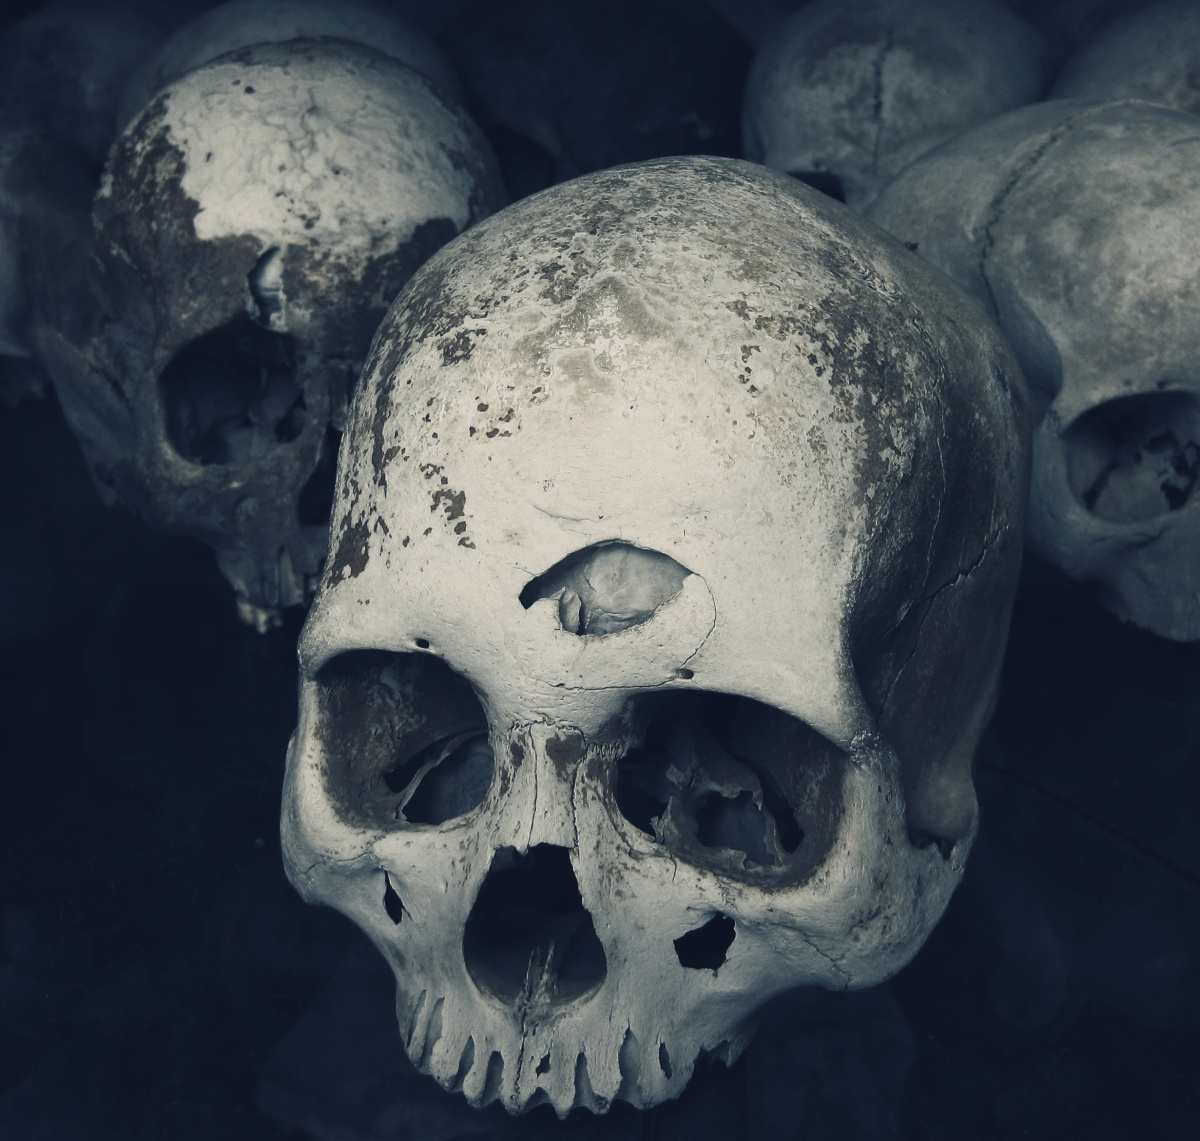 Photo of several real human skulls in Killing Fields of Cambodia